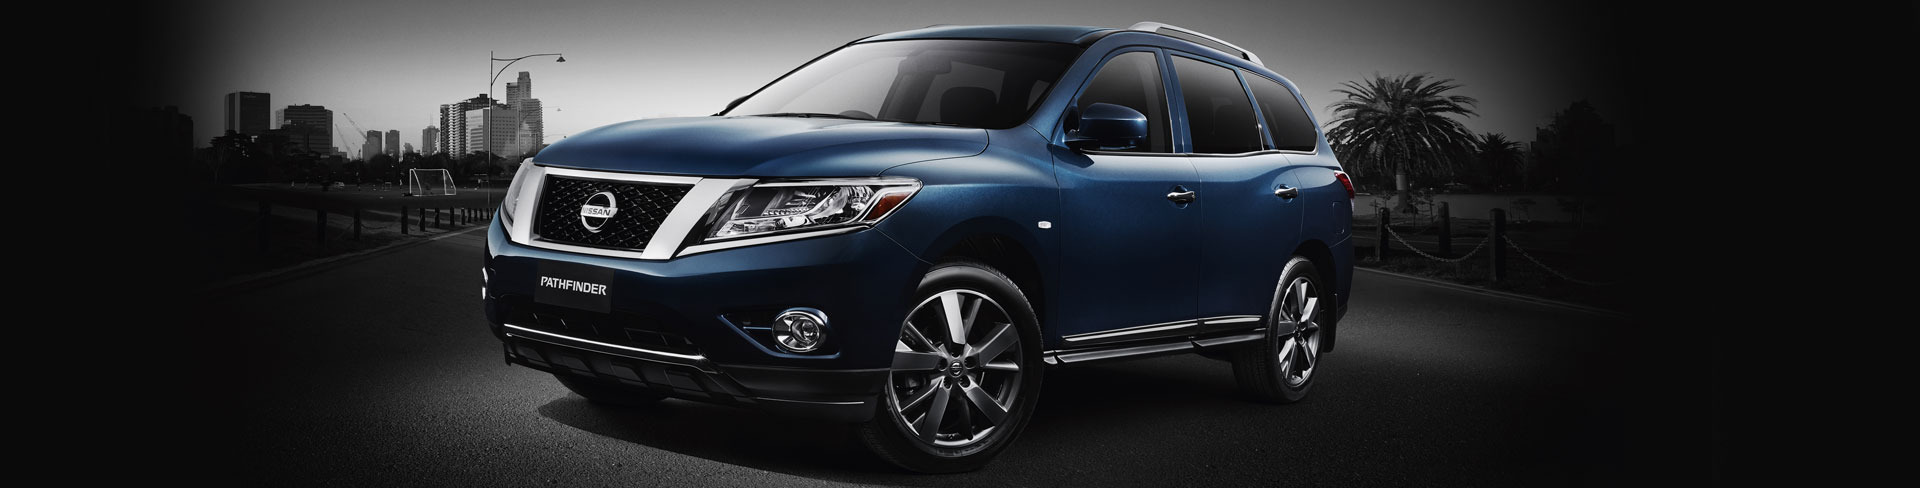 John Page Motors | Nissan Pathfinder | New and Used Nissan Vehicles